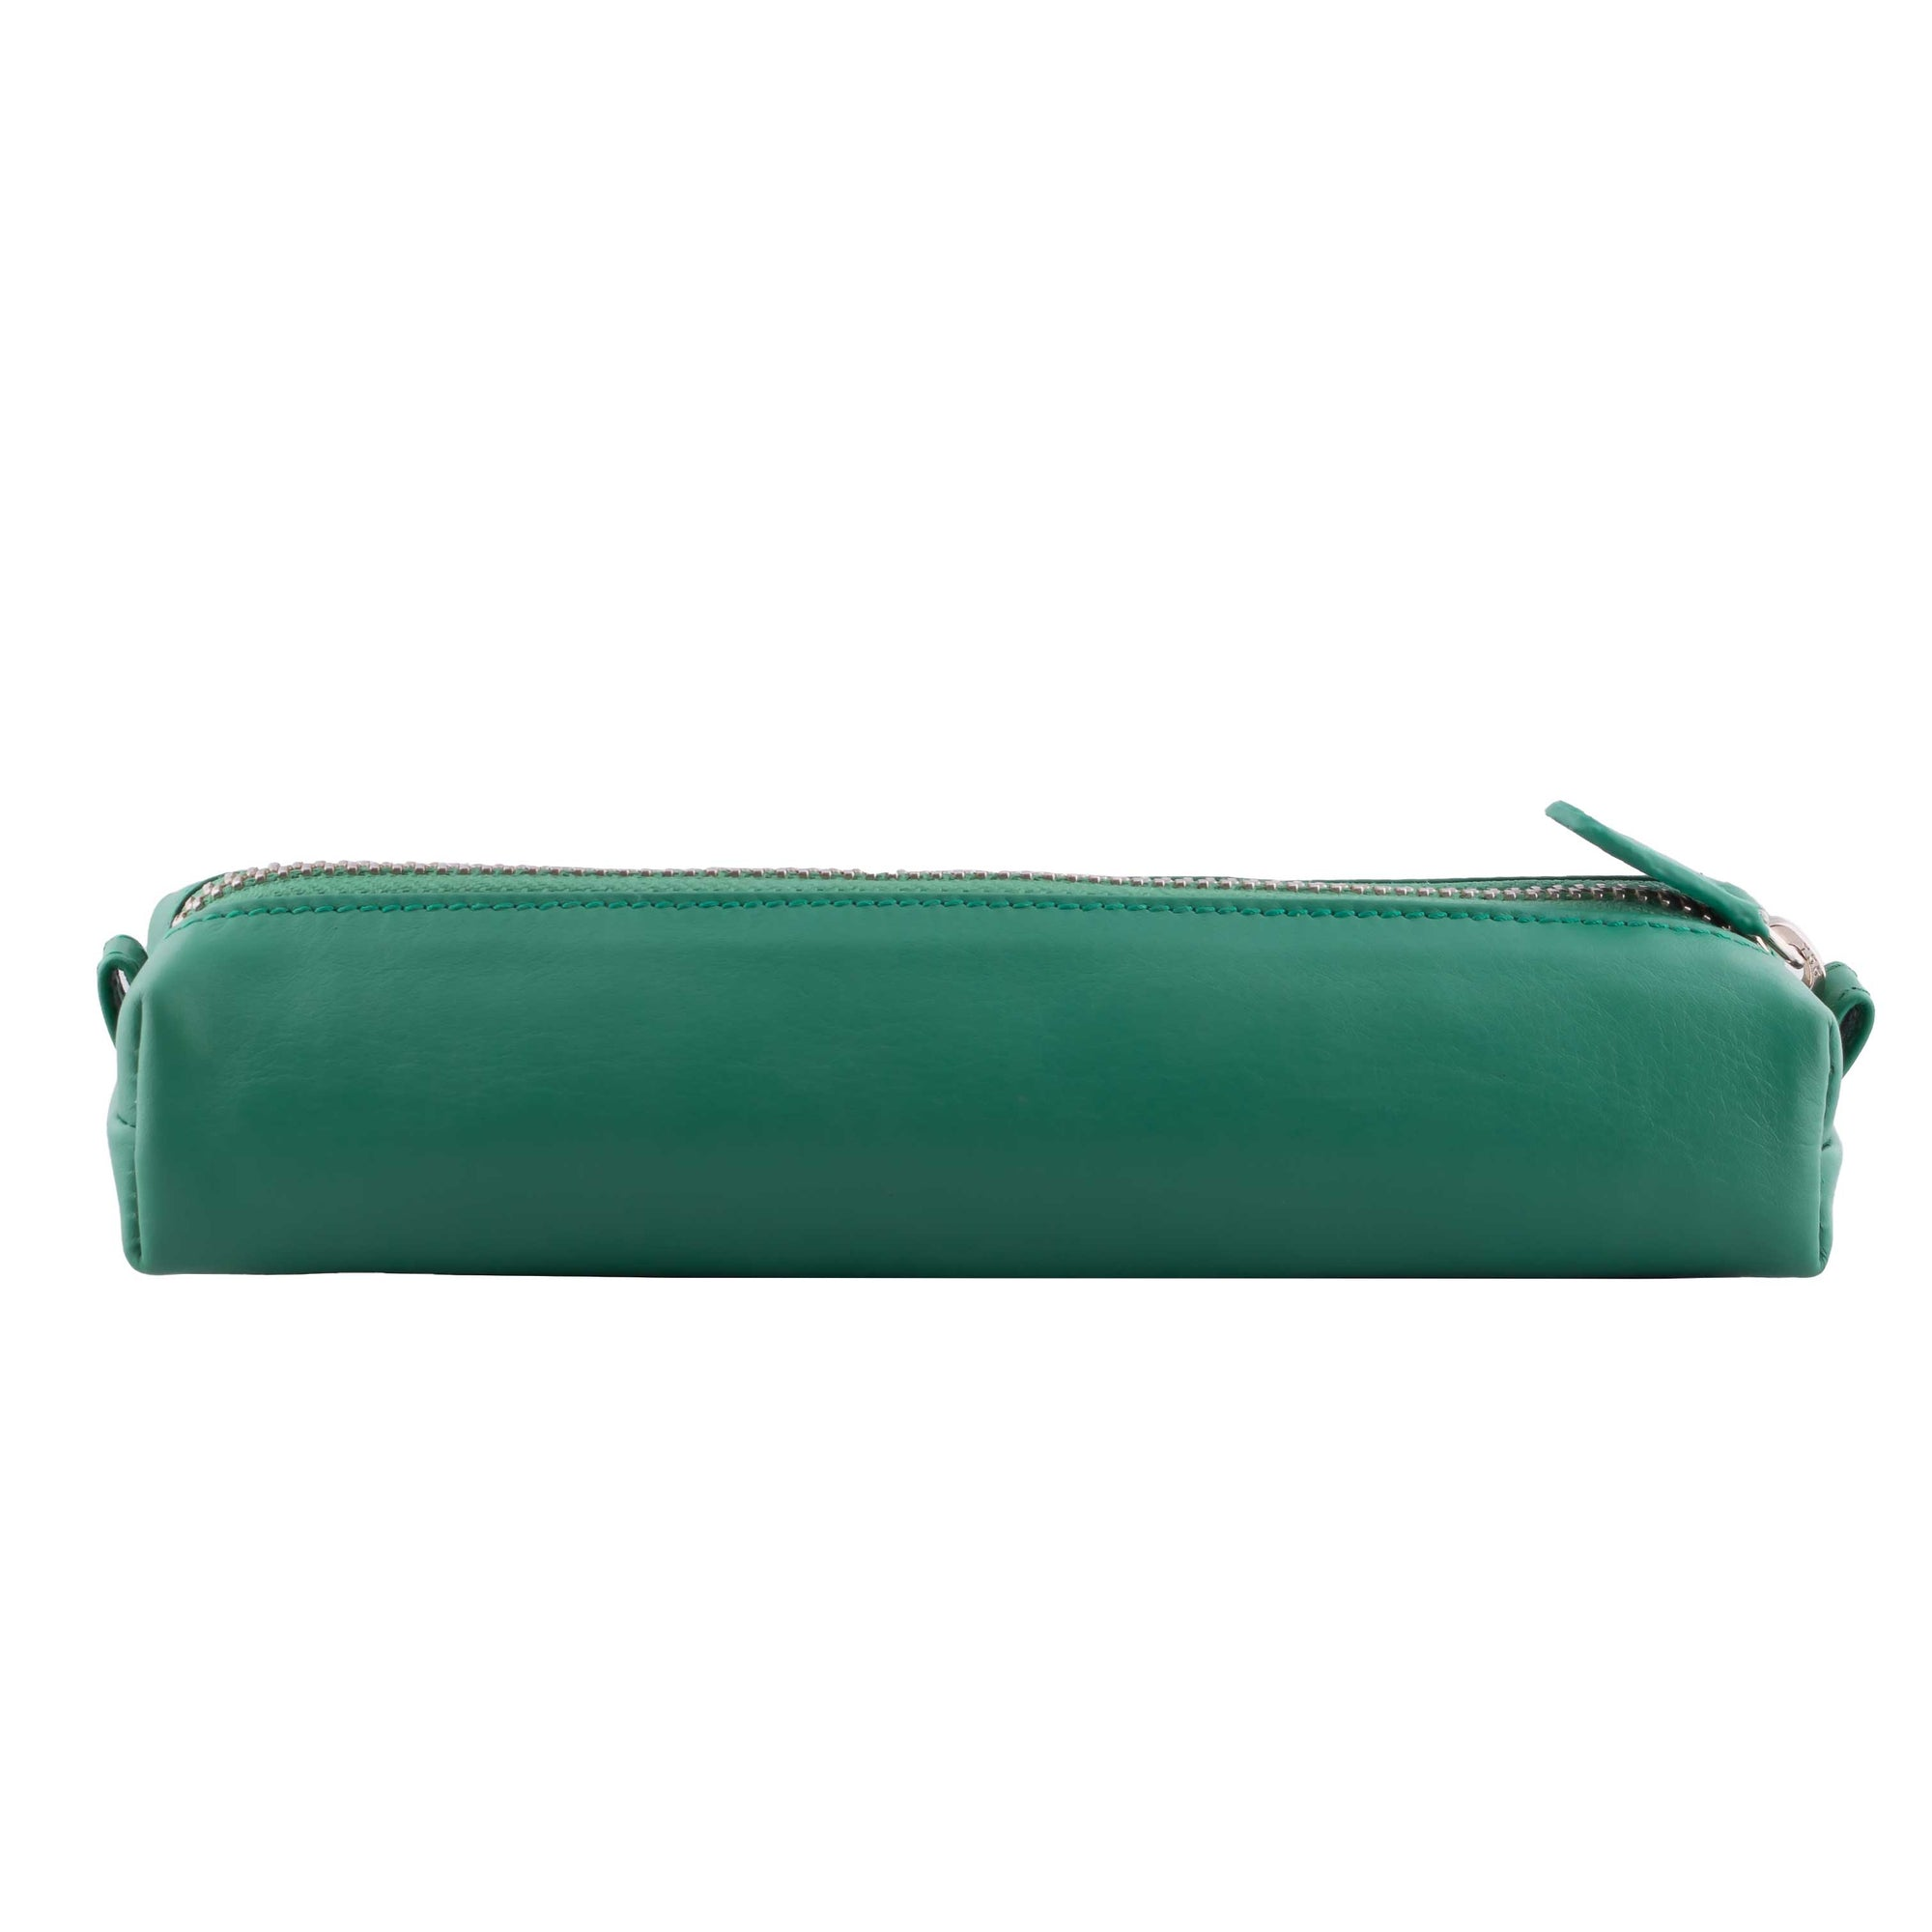 Multi-Purpose Zippered Leather Pen Pencil Case in Various Colors - Light Green